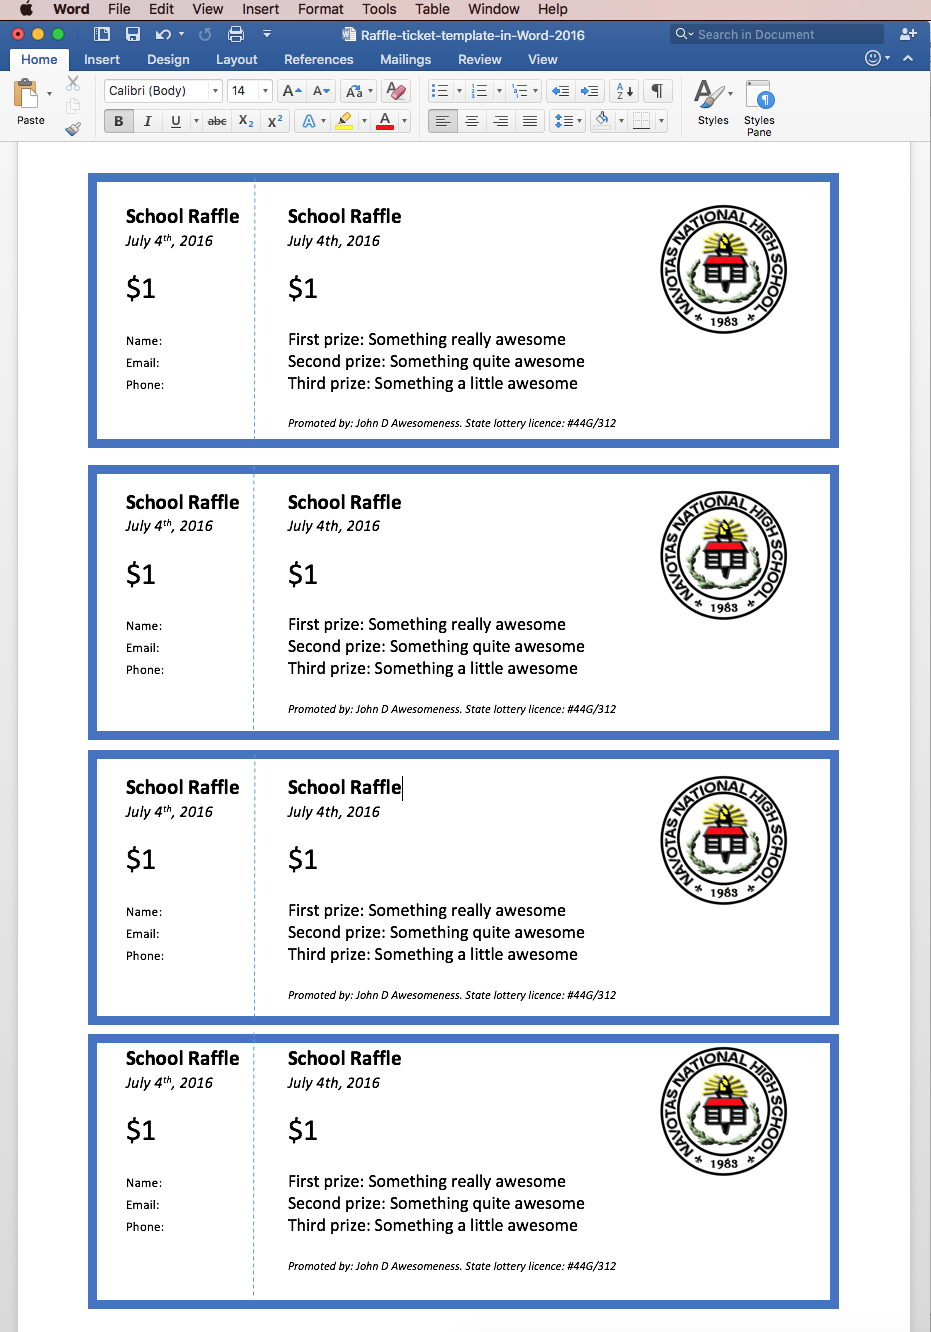 print raffle tickets using a template in office word  so now you have a template ready four raffle tickets per page you just need to add numbers to each one